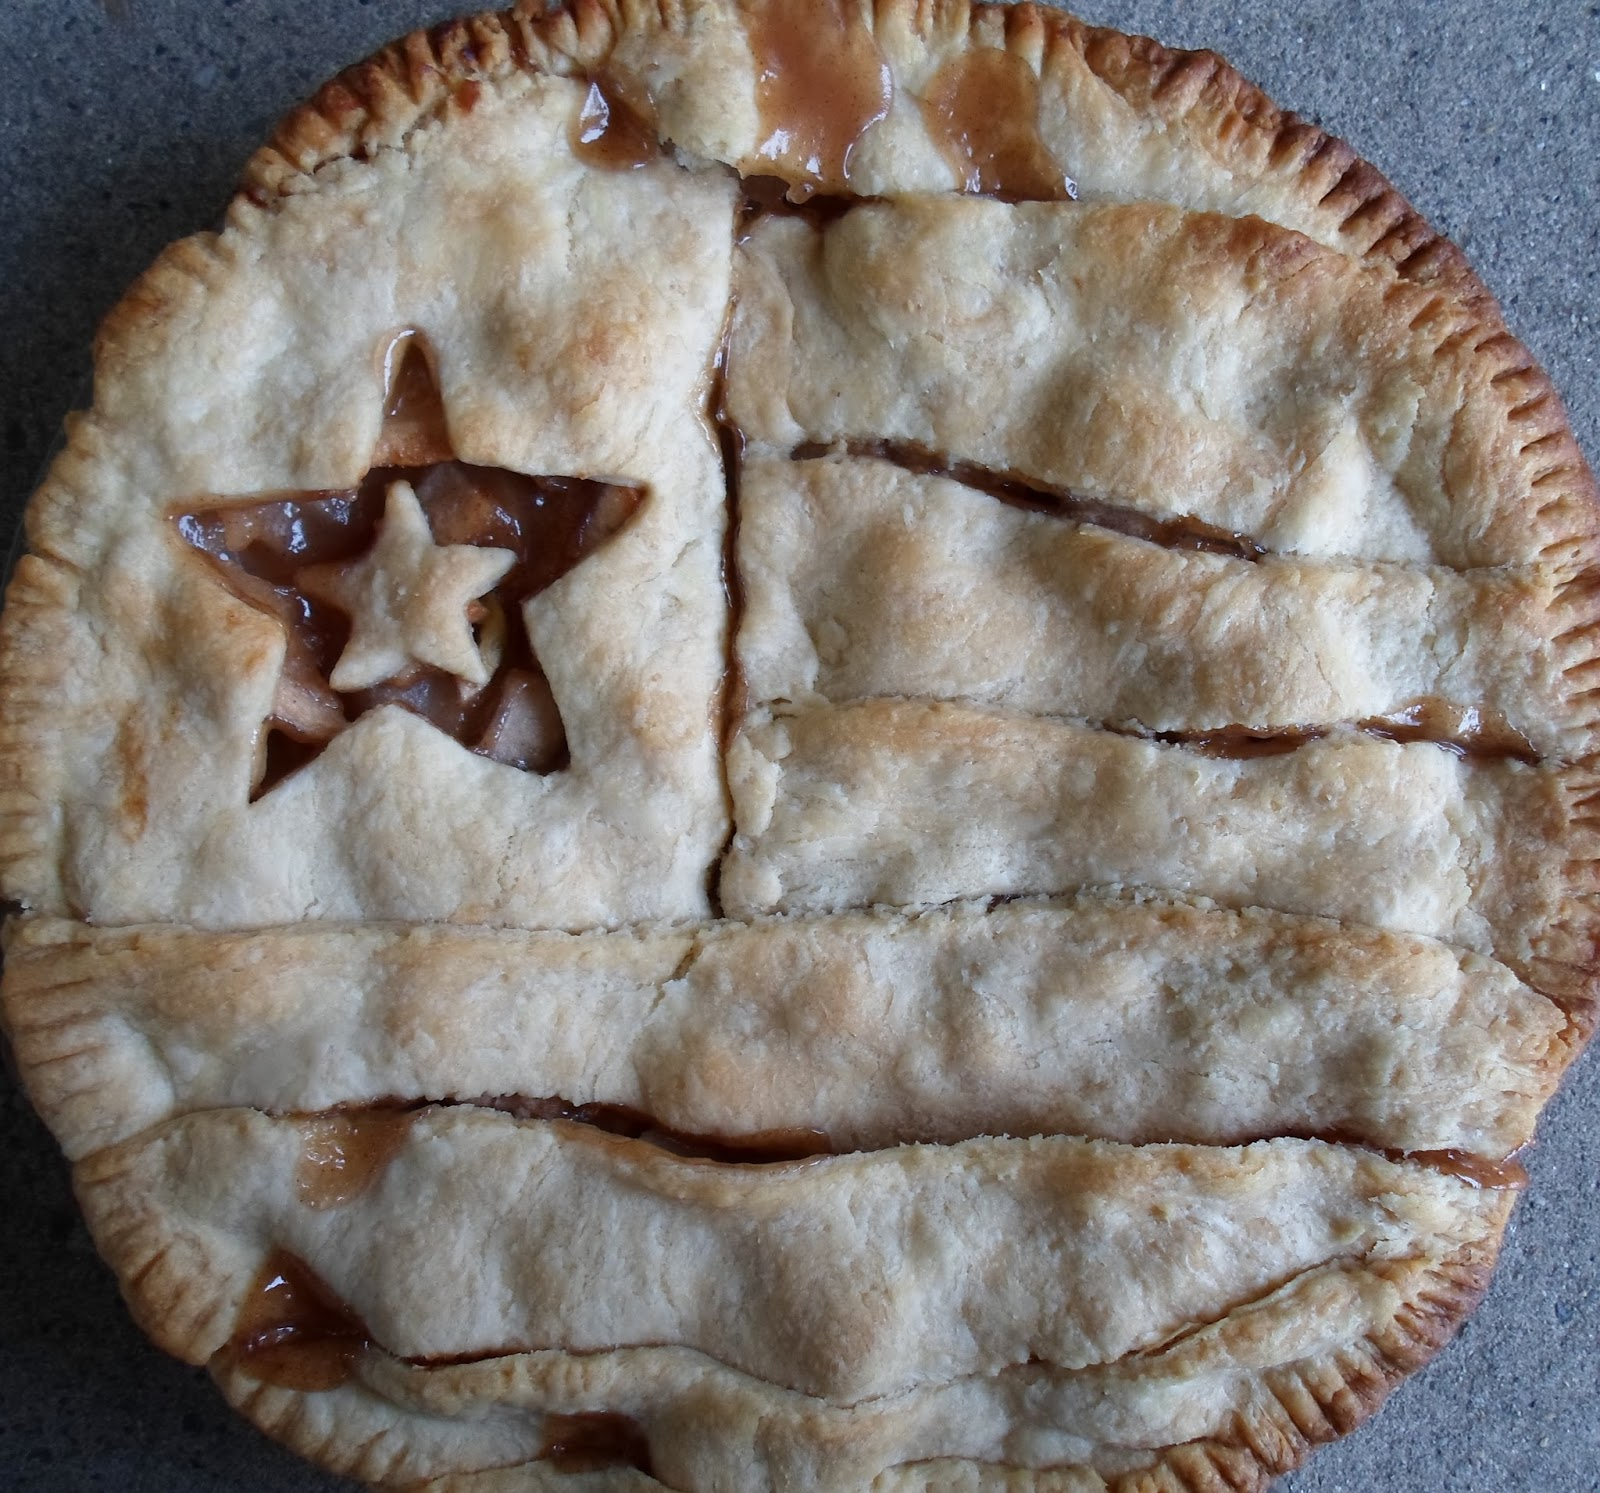 Happier than a pig in mud as american as apple pie for Apple pie decoration